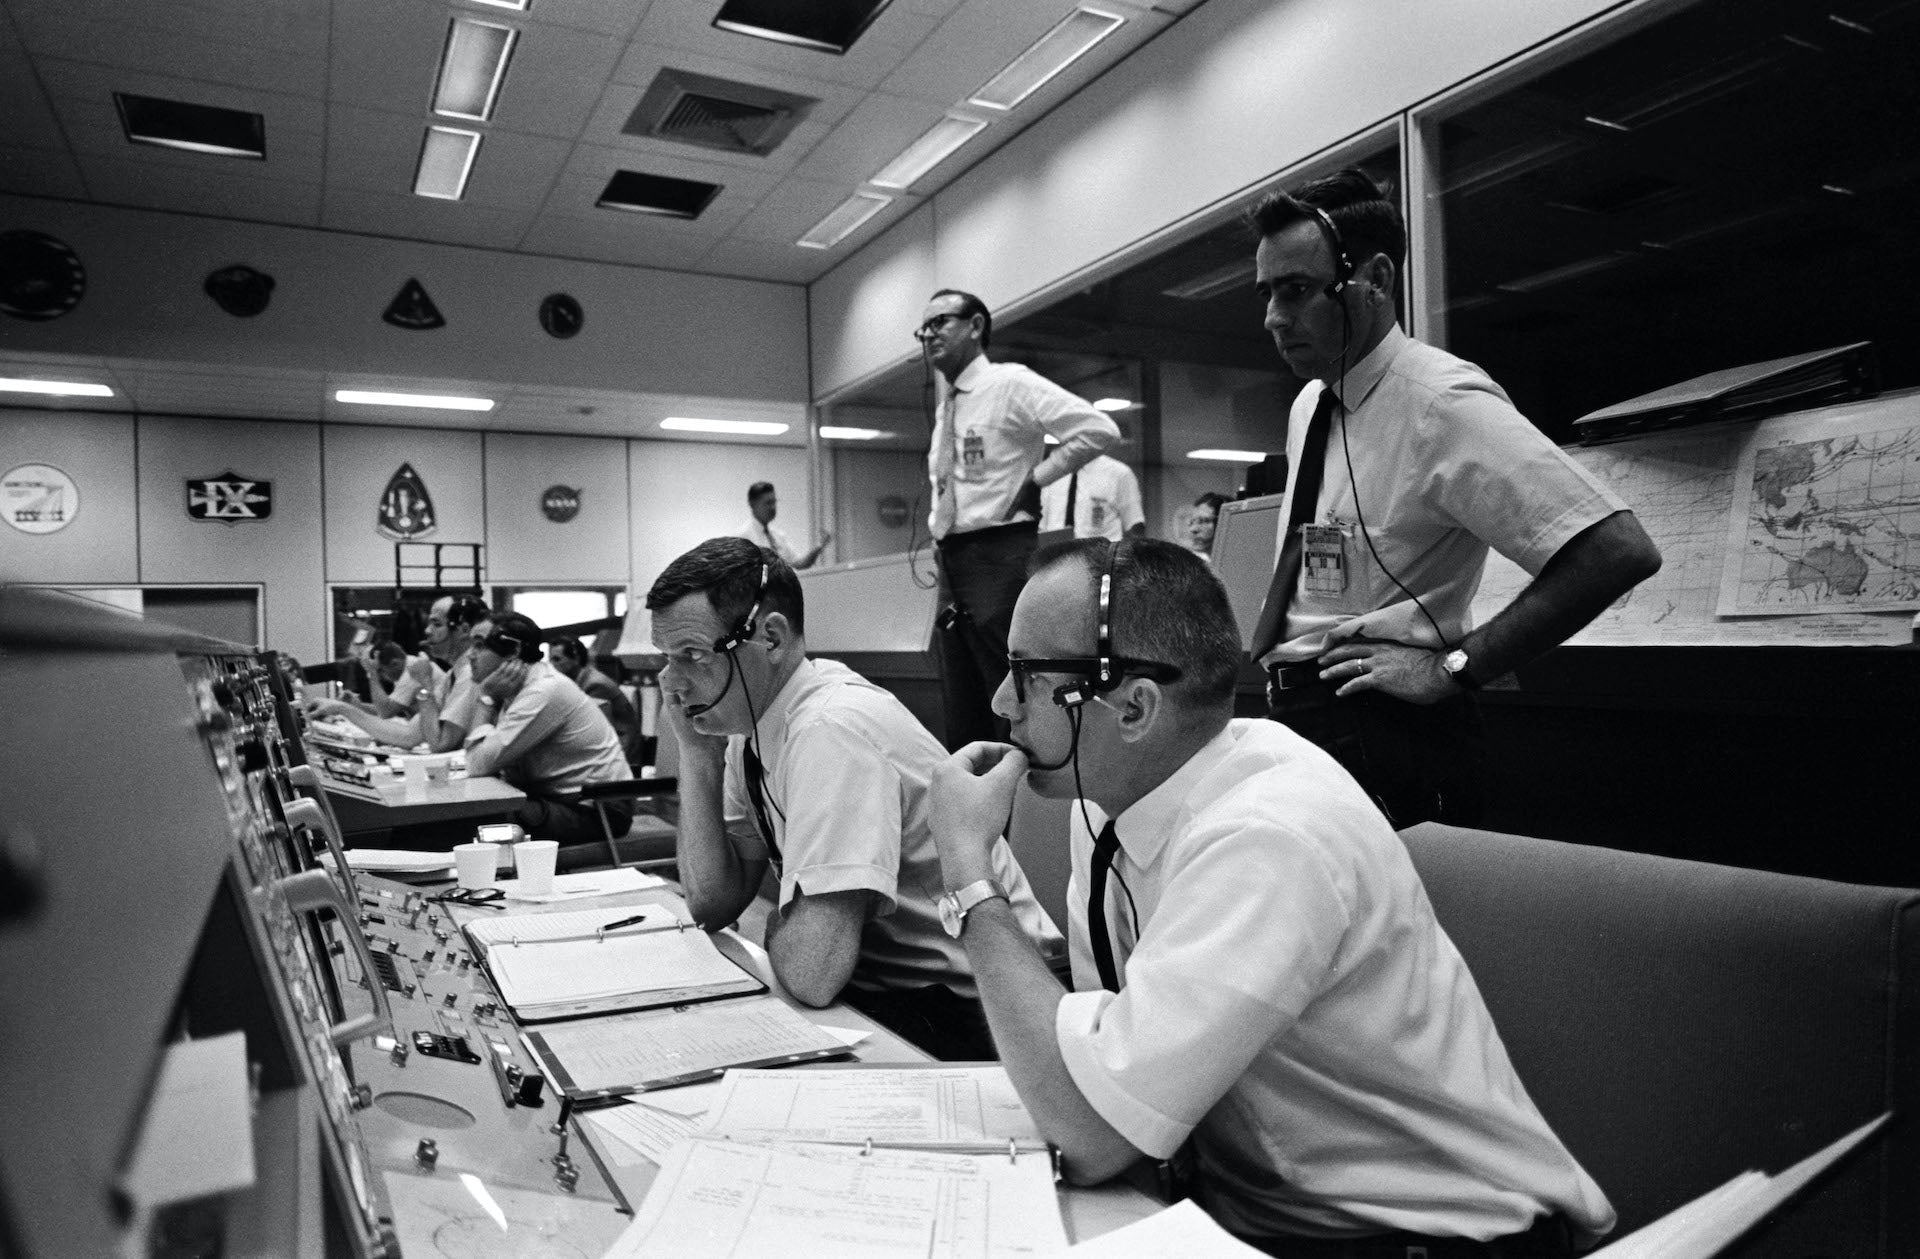 """View of Mission Control Center on the first day of the Apollo 10 lunar orbit mission, May 18, 1969. Rodriguez says, """"The Apollo missions bring back the memory of my father, who was part of this extraordinary endeavor, but more so exemplify the idea of America for me... The scale and ambition were enormous, the odds unimaginable, and yet, the spirit was one of absolute confidence that it was possible and necessary for America to achieve. And it did—in a way that would cement America's status as the leader of the free world for many years past the missions. I hope that it can be a beacon for America to return to."""" Photo © NASA"""